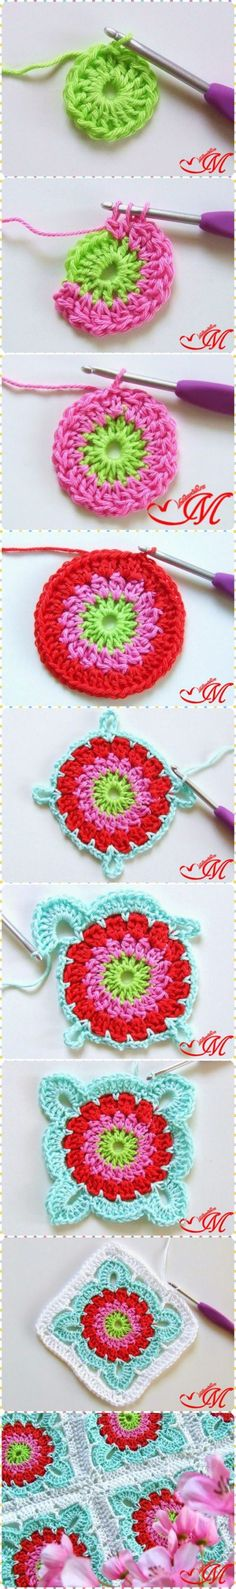 How to Crochet Granny Square Blanket How to Crochet Pretty Granny Square Blanke. How to Crochet Granny Square Blanket How to Crochet Pretty Granny Square Blanket with Free Pattern Crochet Blocks, Granny Square Crochet Pattern, Crochet Flower Patterns, Crochet Squares, Crochet Granny, Crochet Flowers, Granny Squares, Blanket Crochet, Crochet Daisy